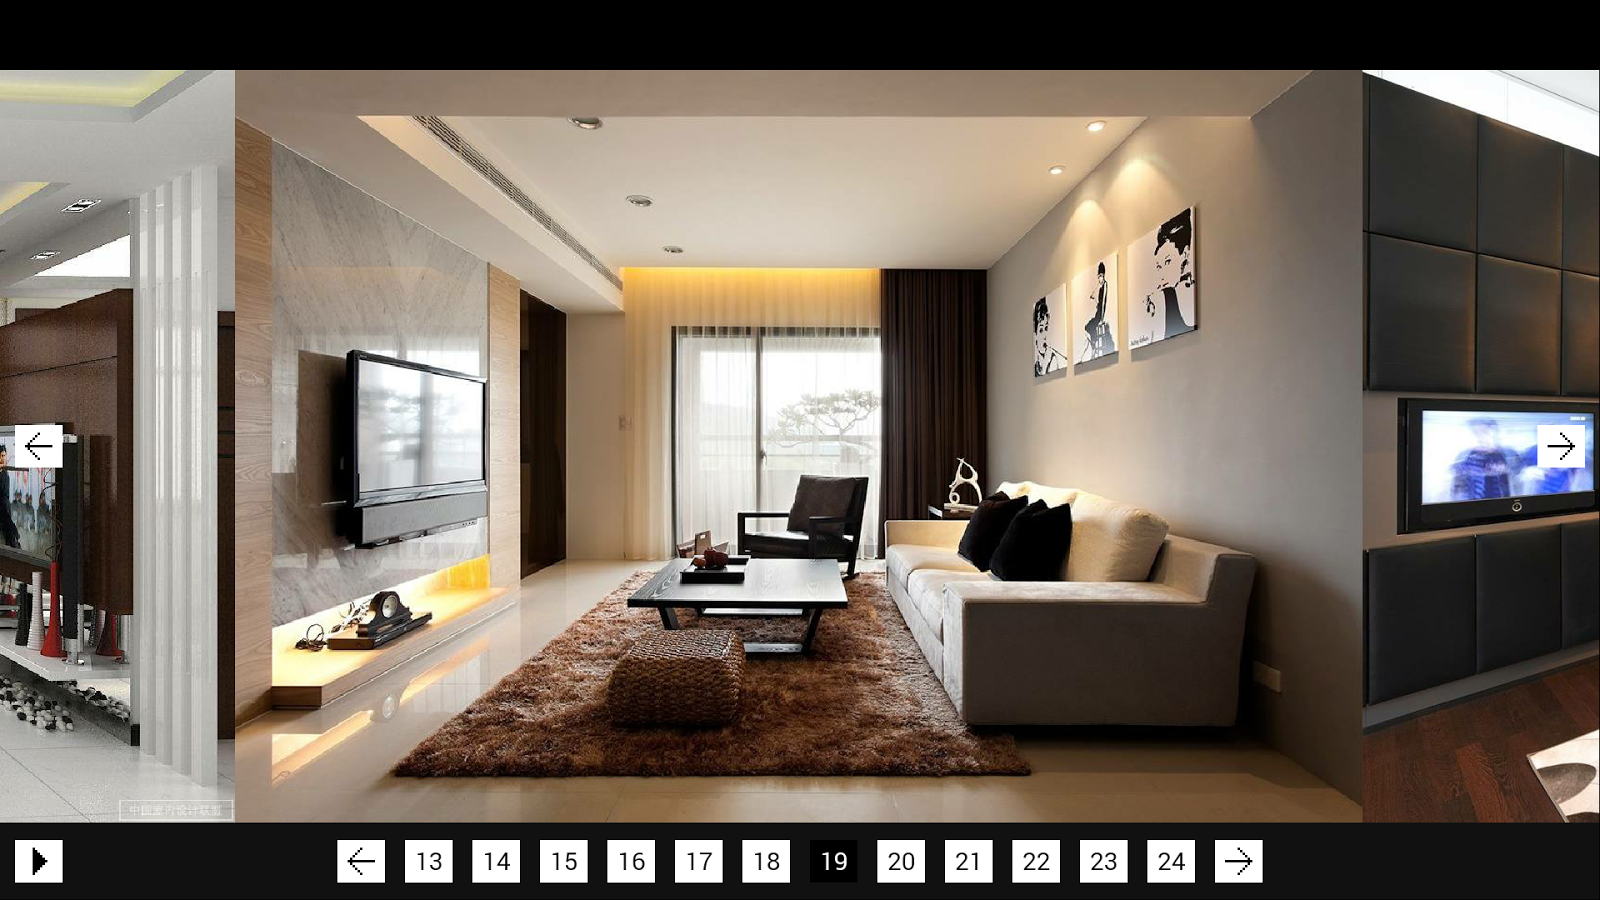 Home interior design android apps on google play for Venetian interior design ideas for your home